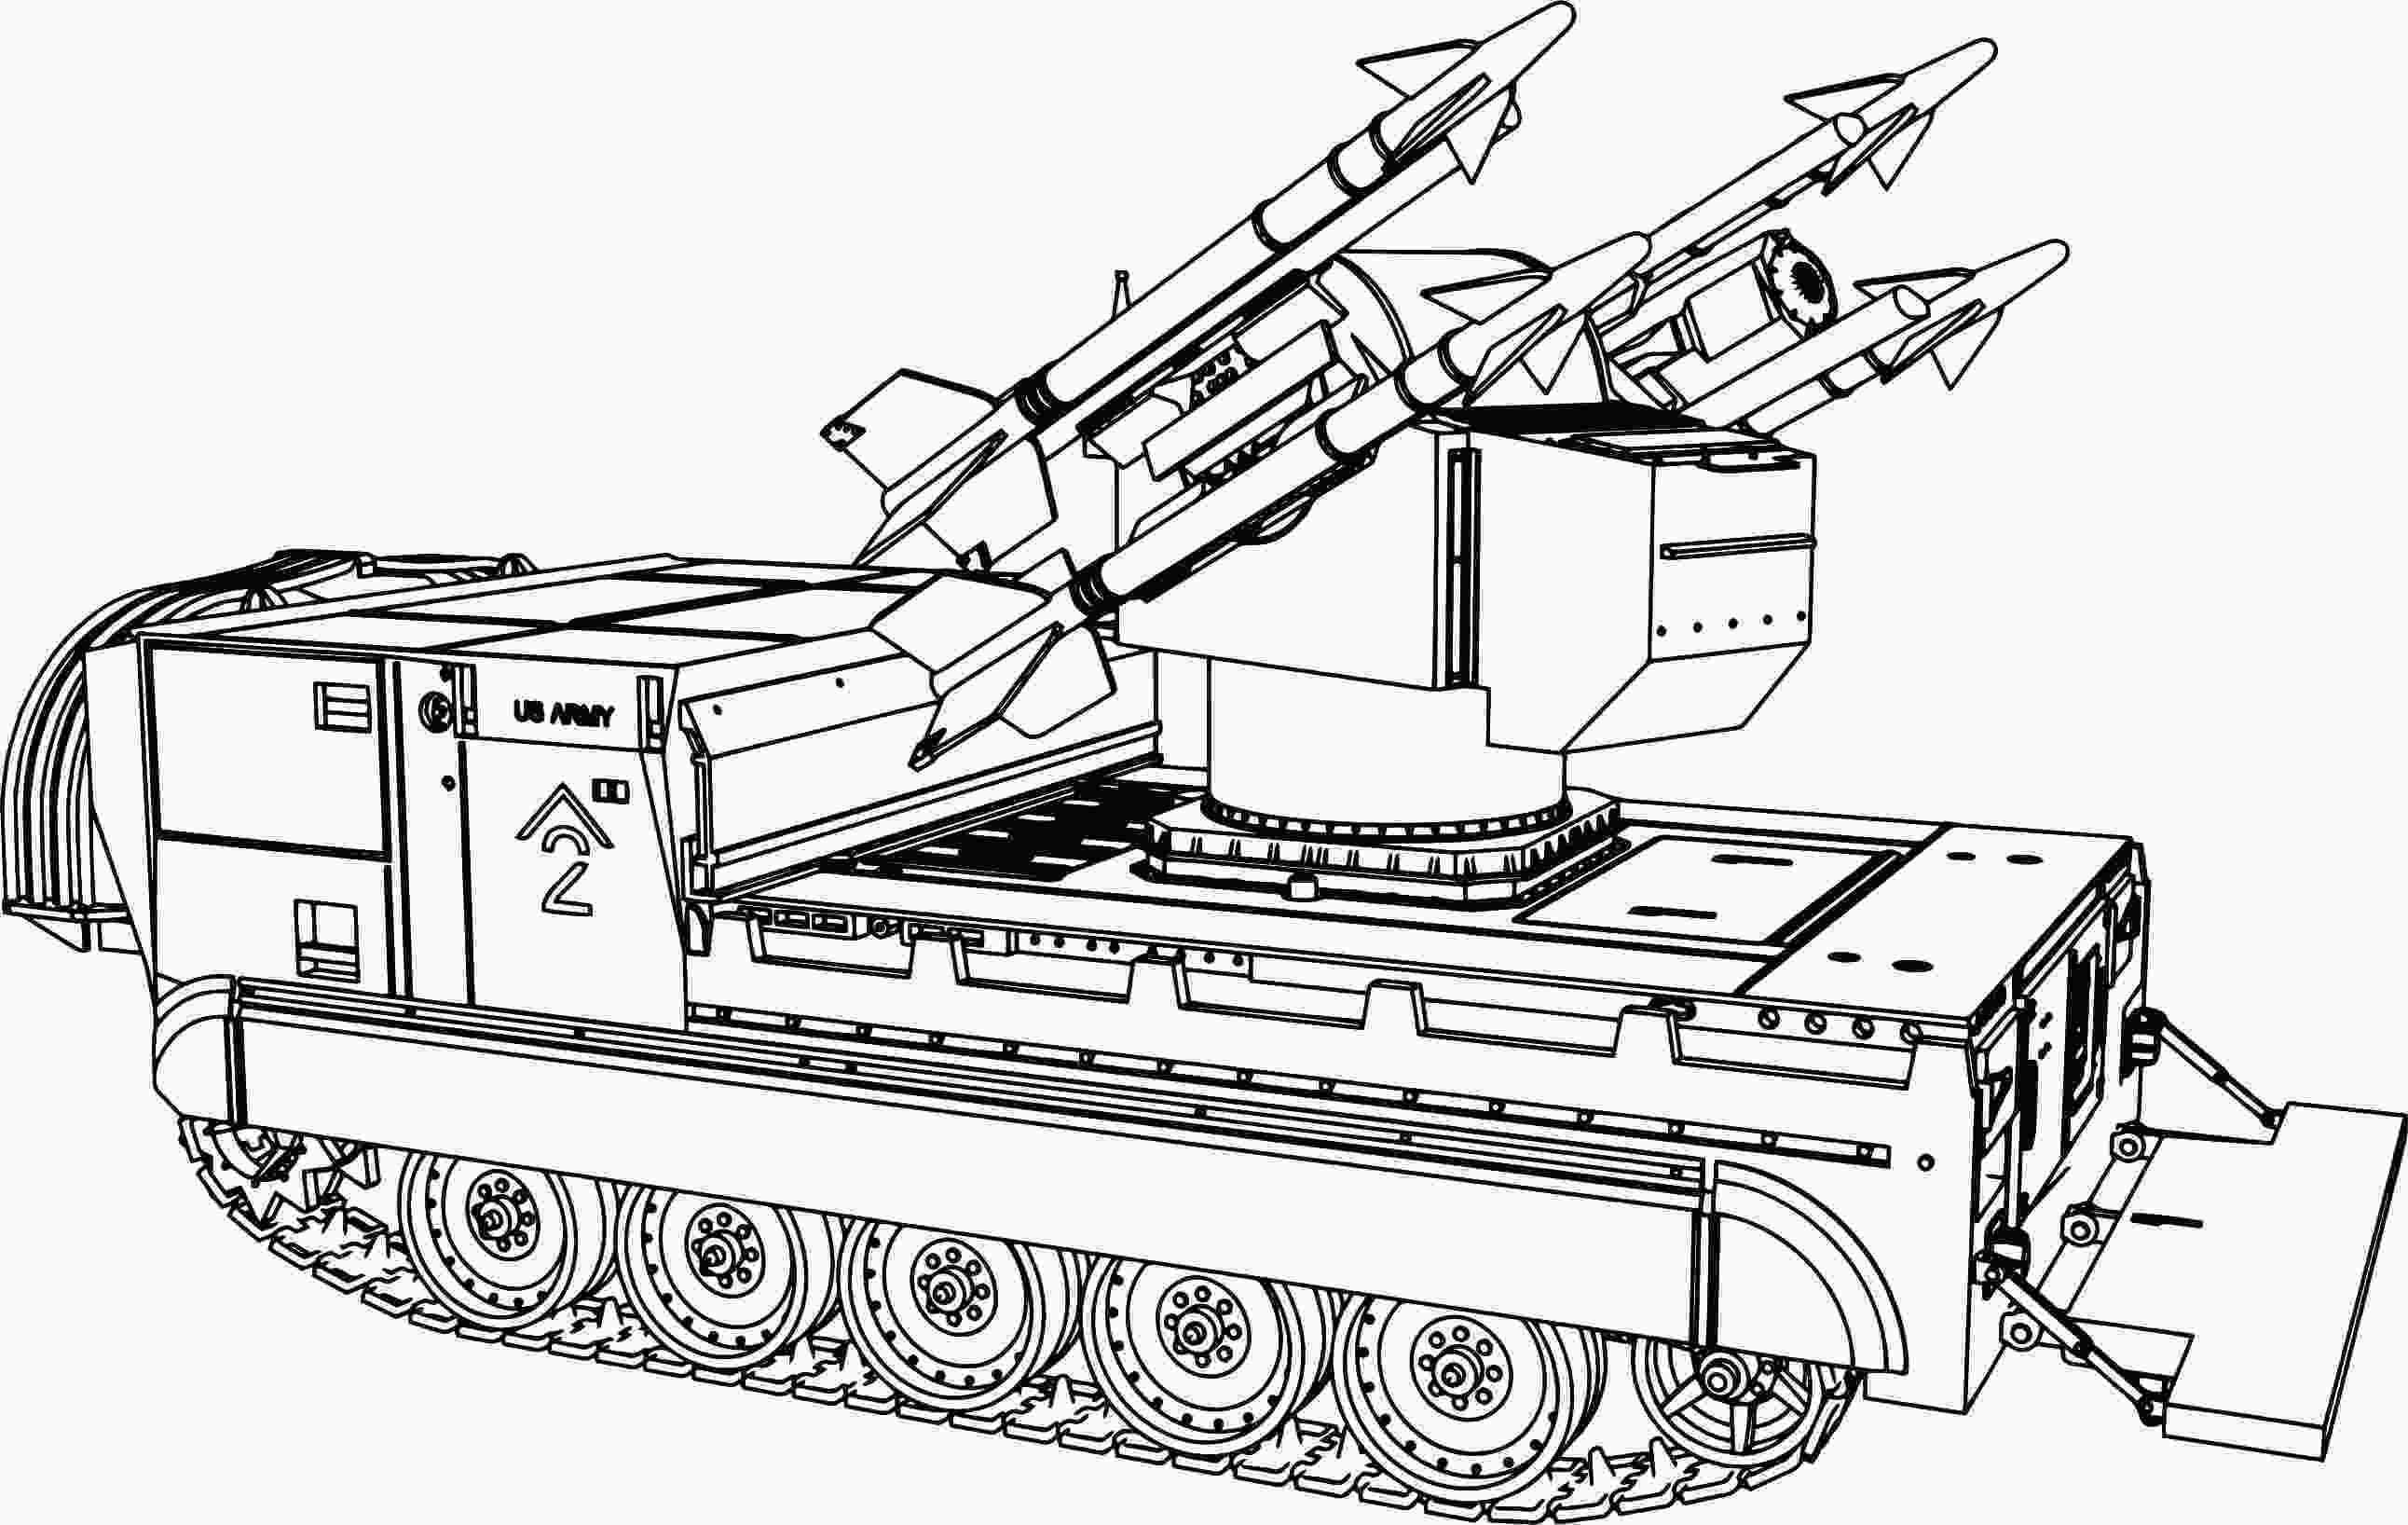 Army Tank Coloring Page Halloweencoloringpages Army Tank Coloring Page M730a1 Tank Coloring Page Wec Coloring Pages Free Coloring Pages Free Coloring Pictures